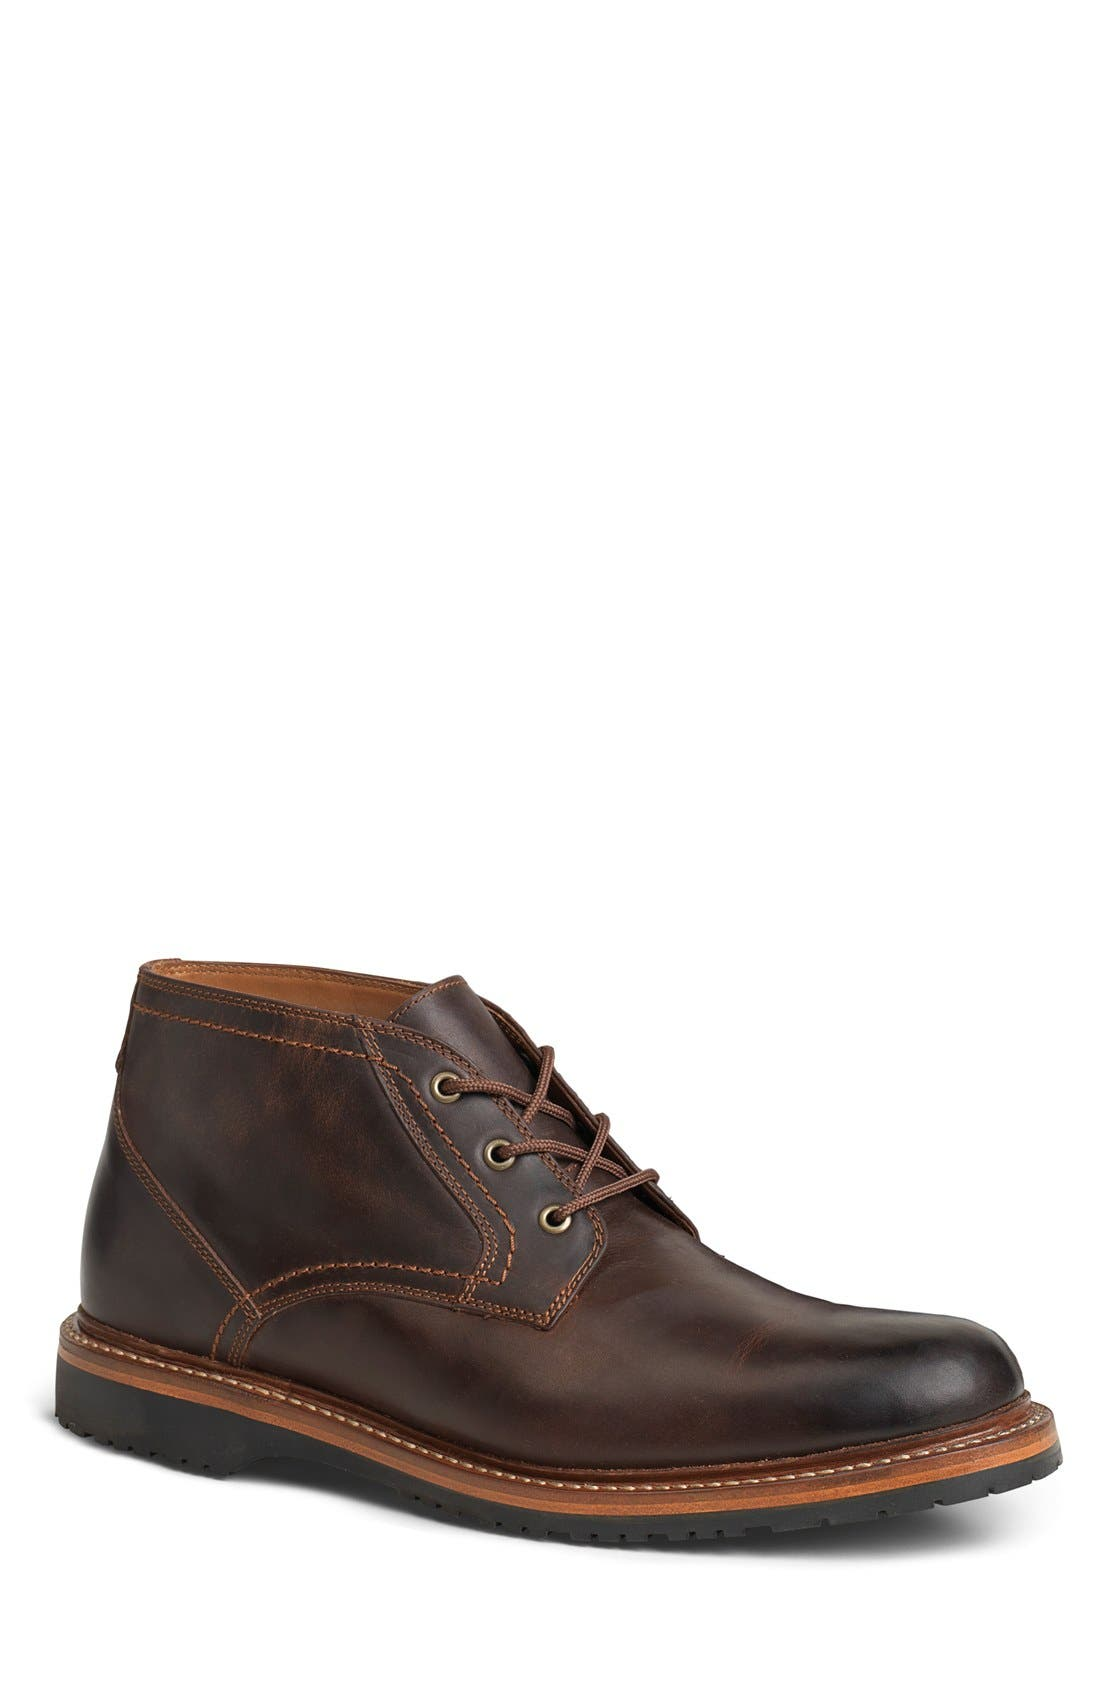 Alternate Image 1 Selected - Trask Arlington Chukka Boot (Men)